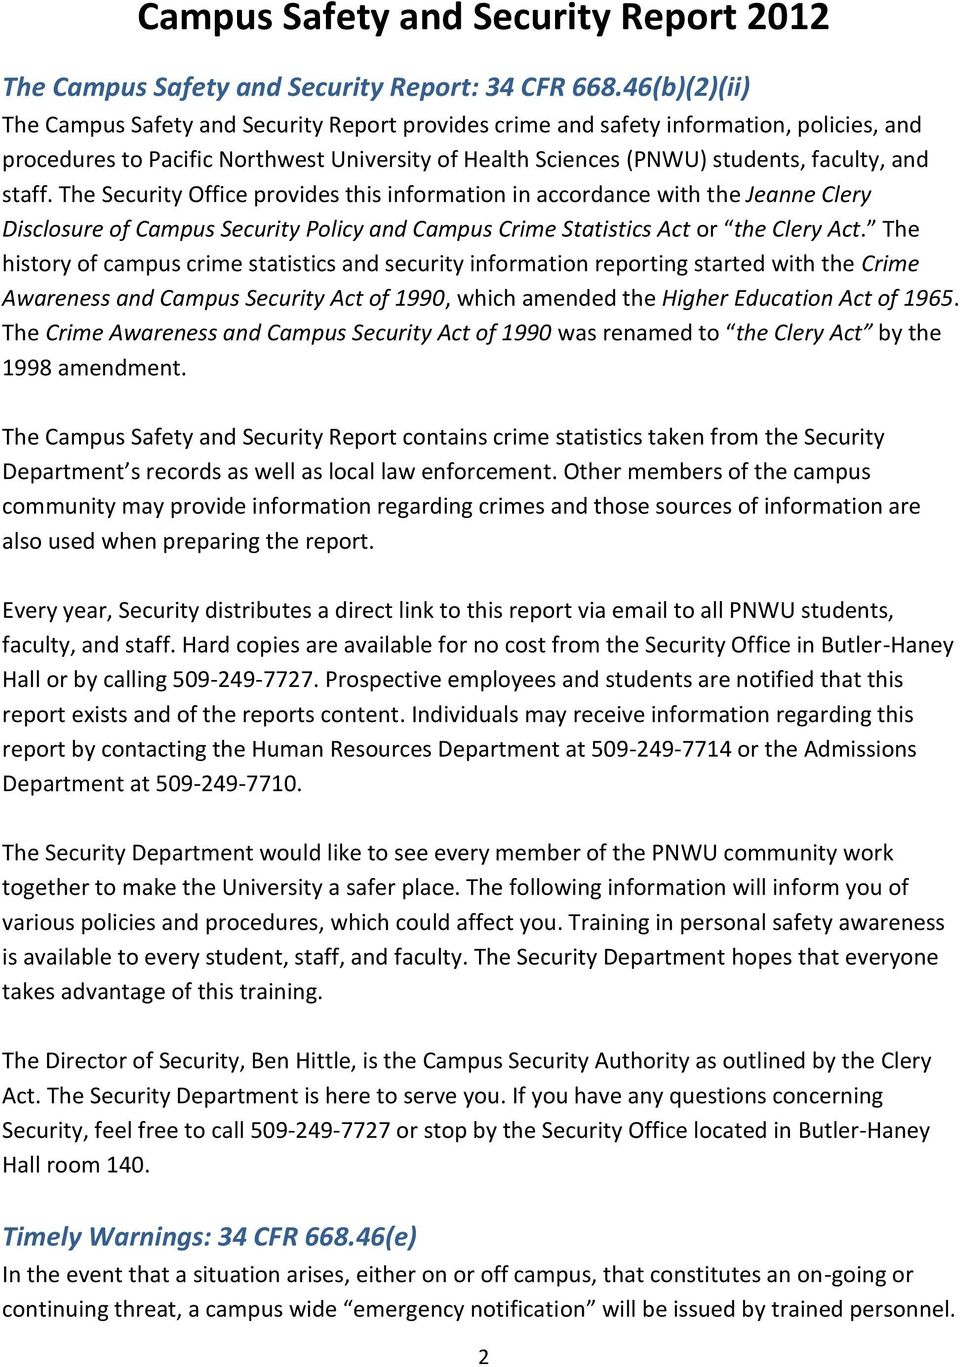 staff. The Security Office provides this information in accordance with the Jeanne Clery Disclosure of Campus Security Policy and Campus Crime Statistics Act or the Clery Act.